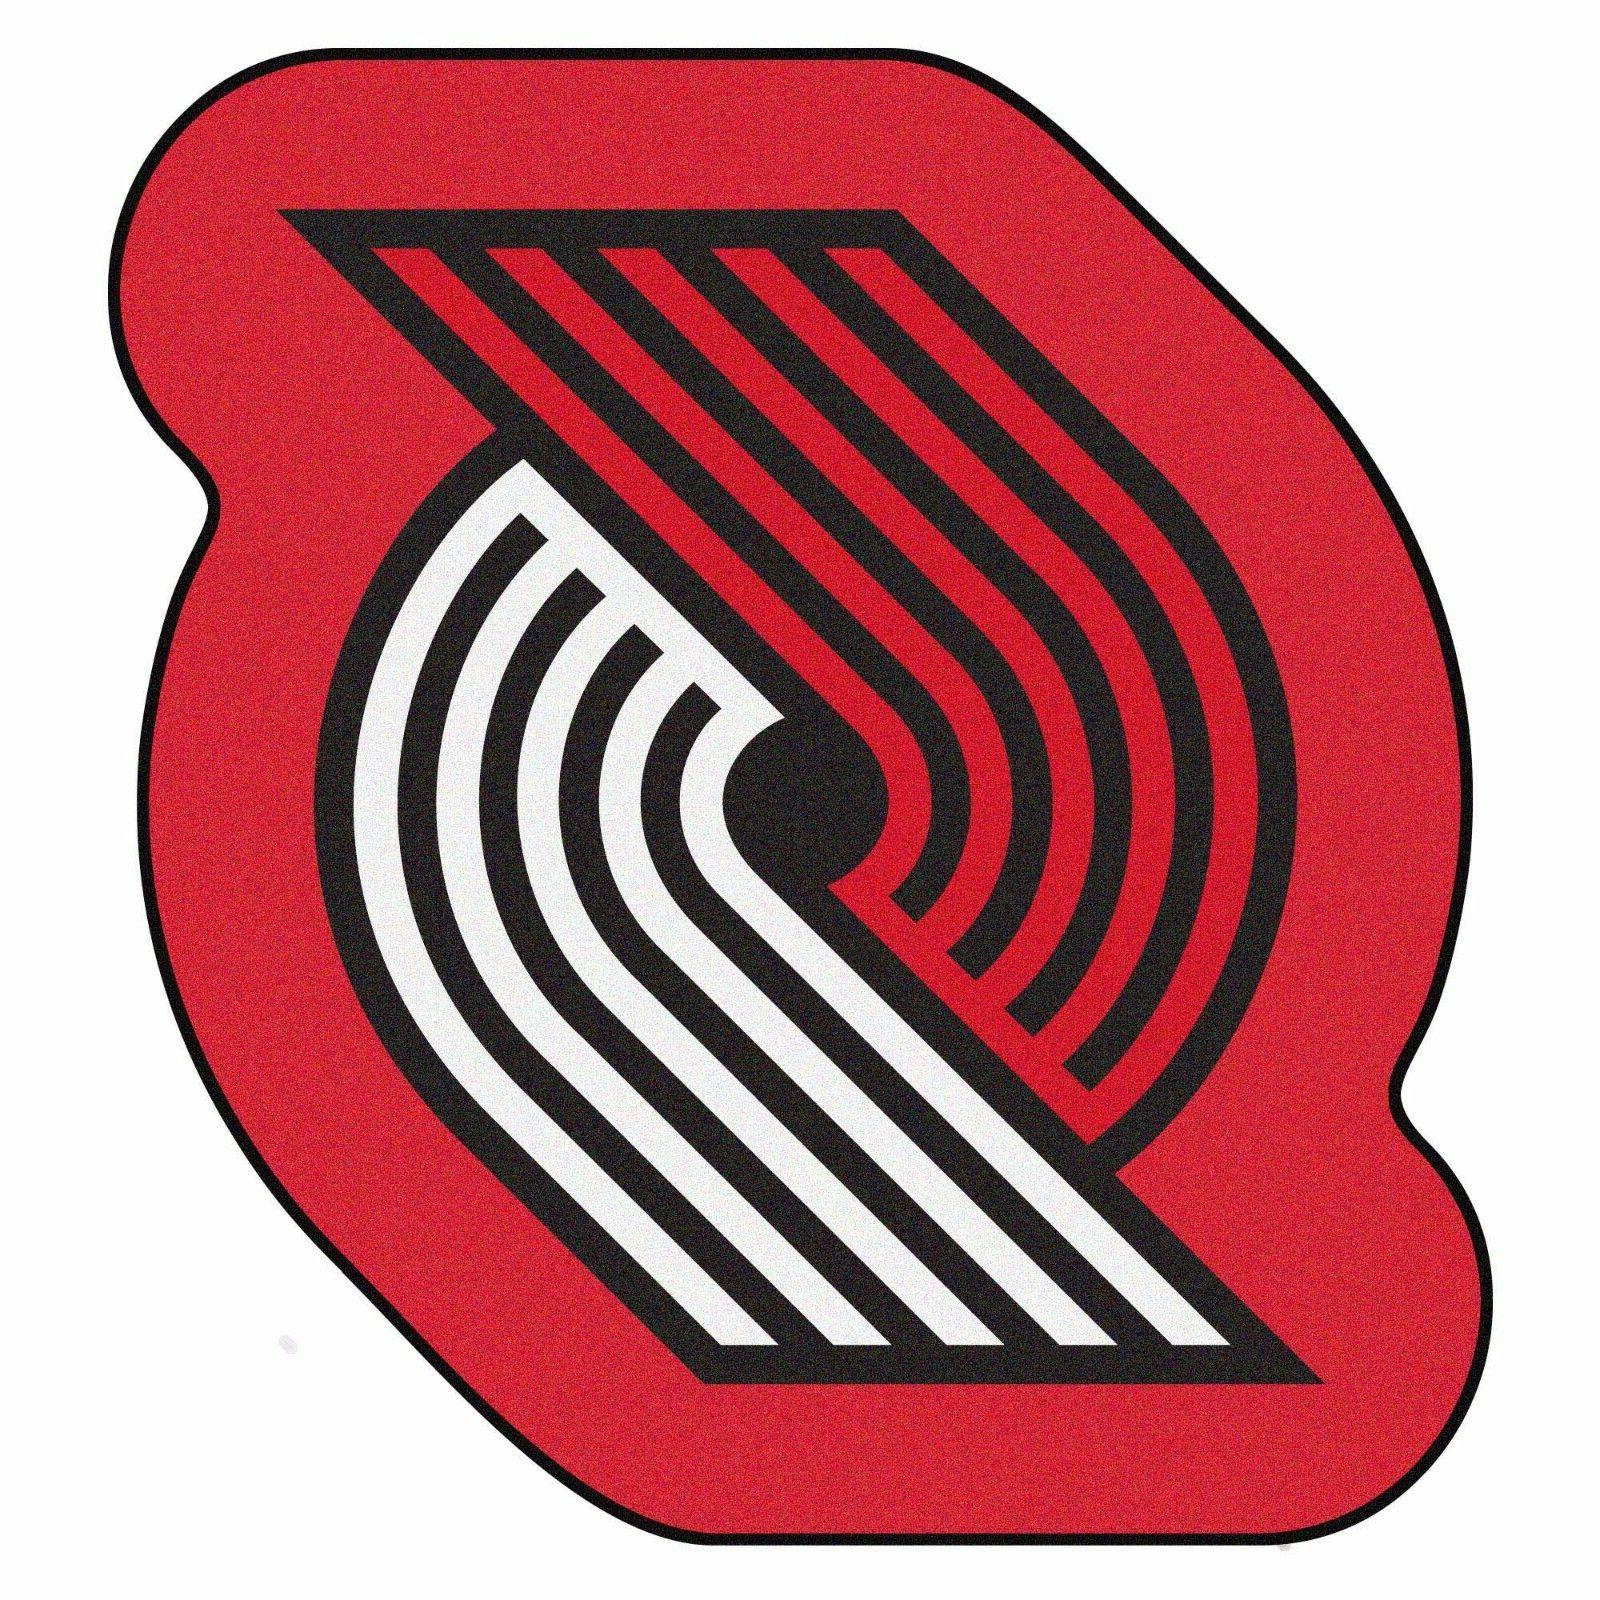 portland trail blazers mascot decorative logo cut